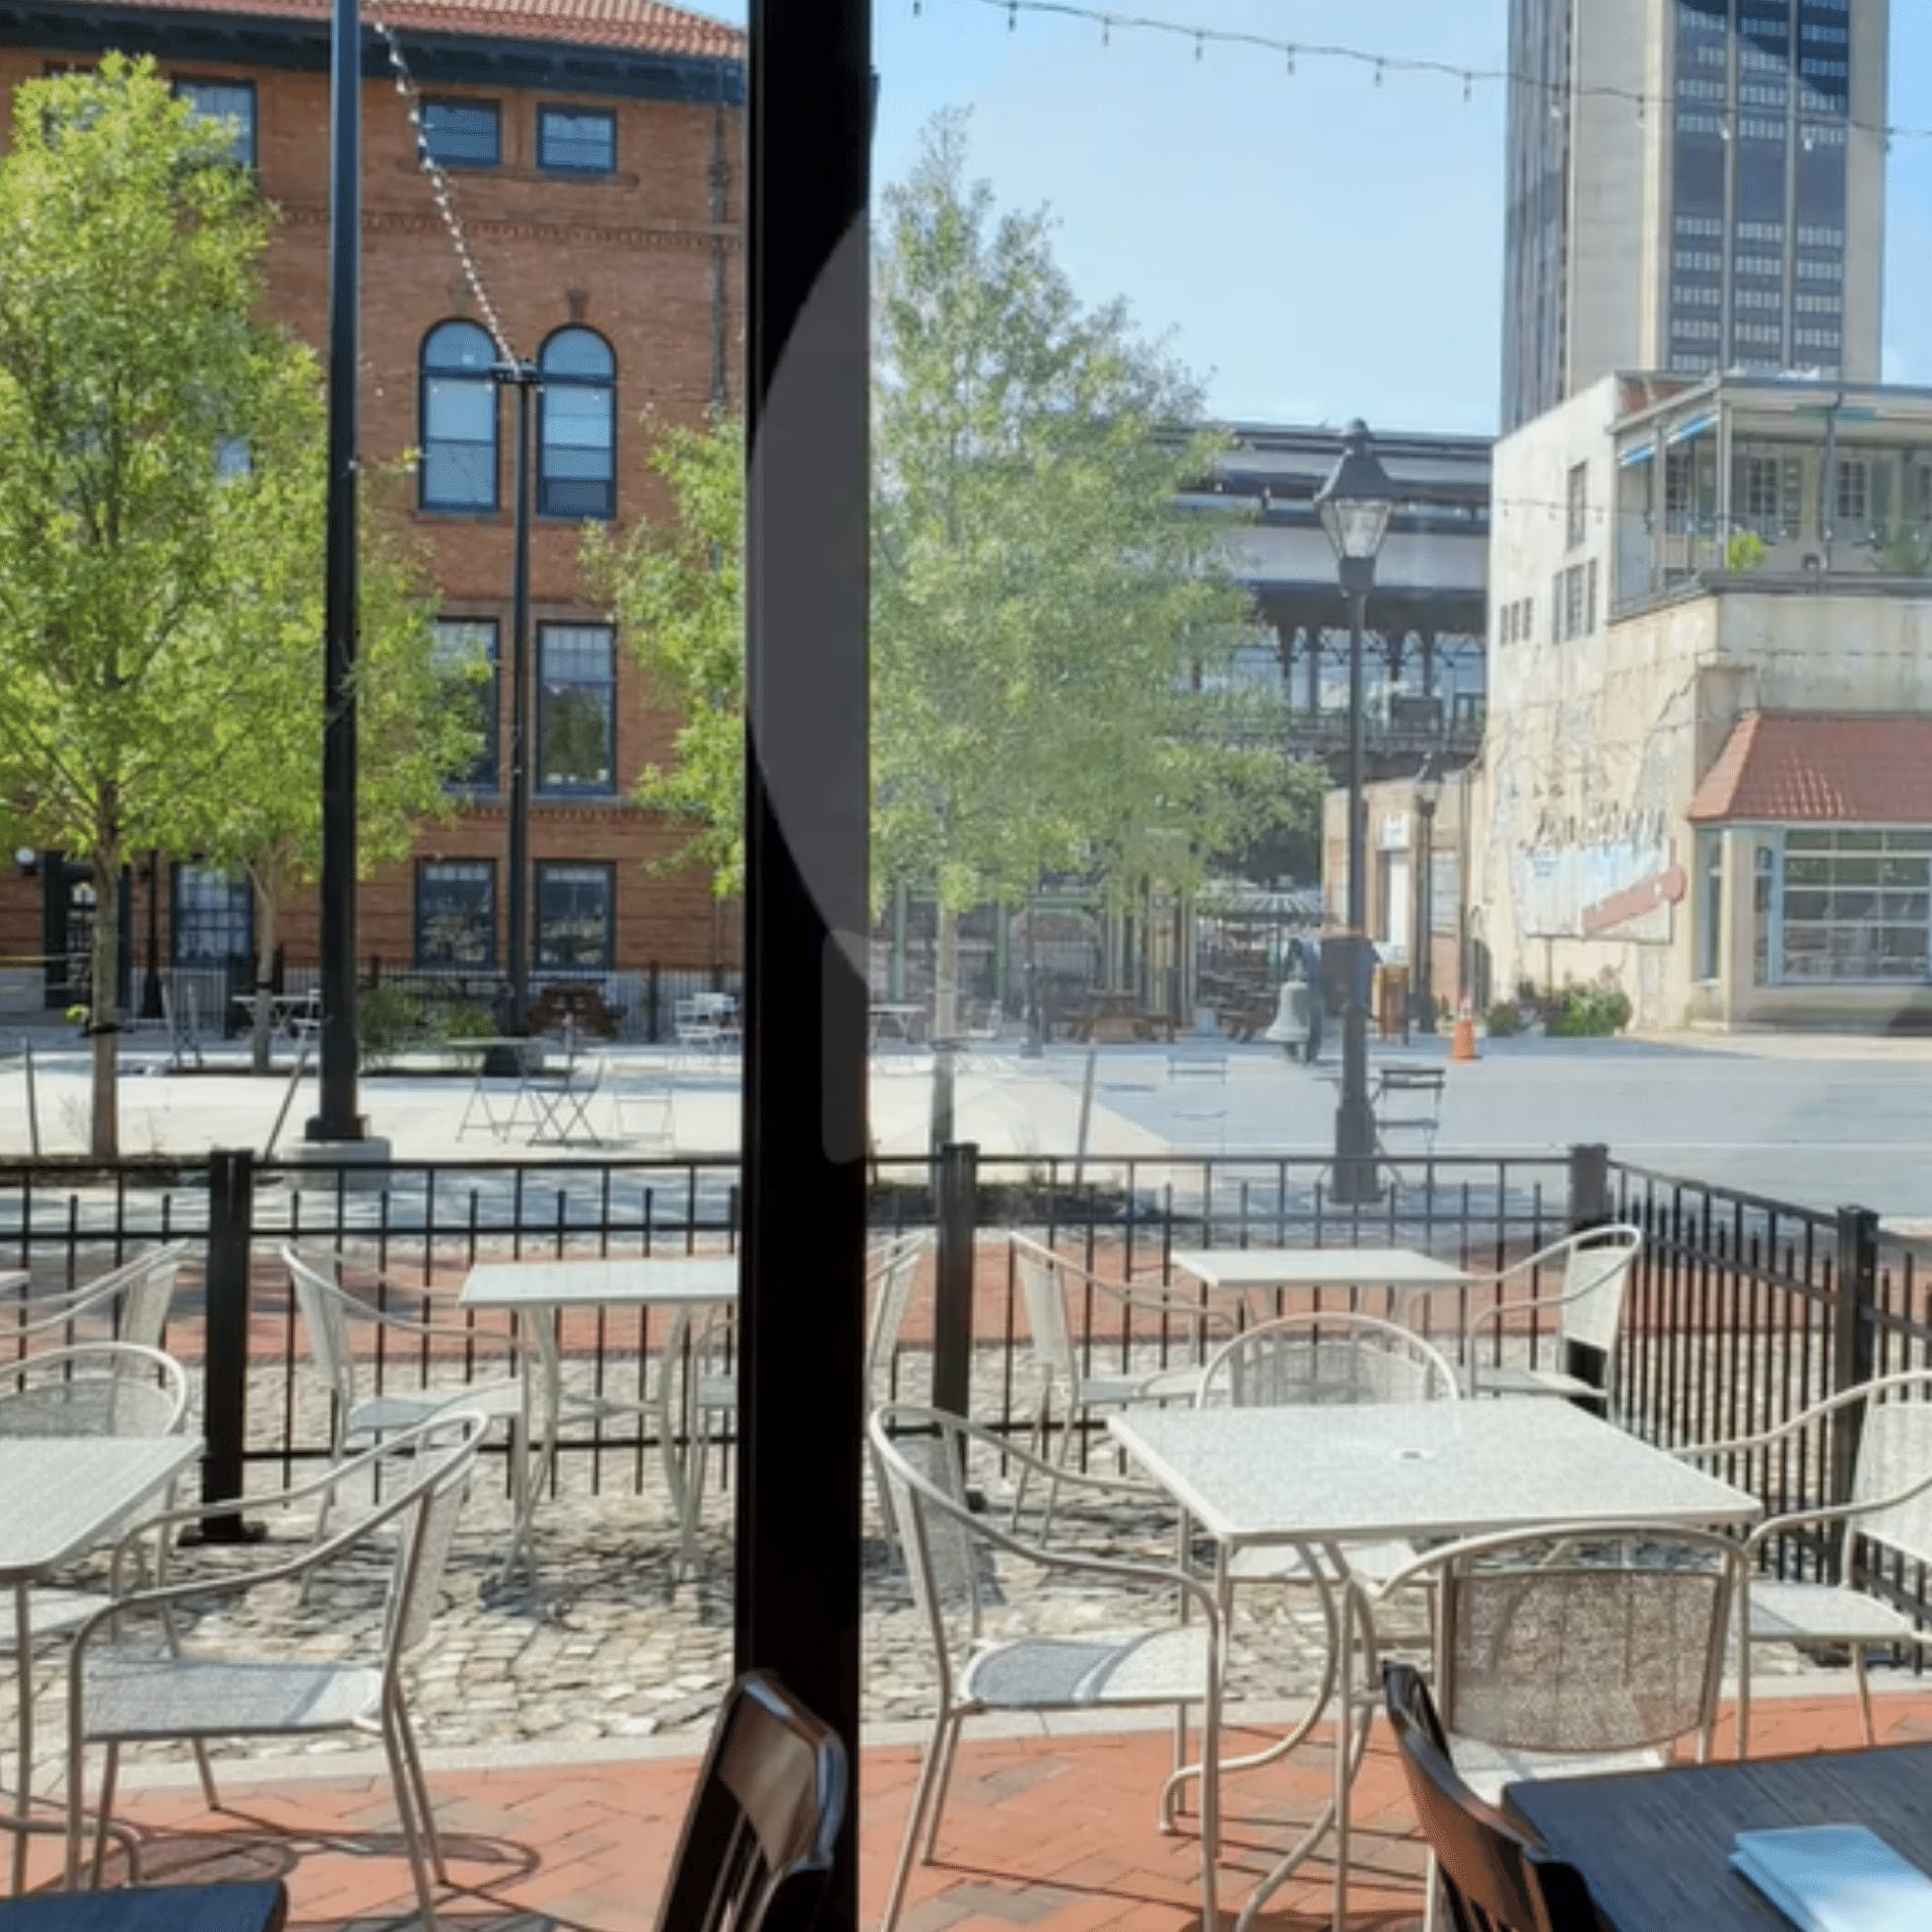 Addis Ethiopian - 25 Restaurants for Outdoor Dining in Downtown Richmond